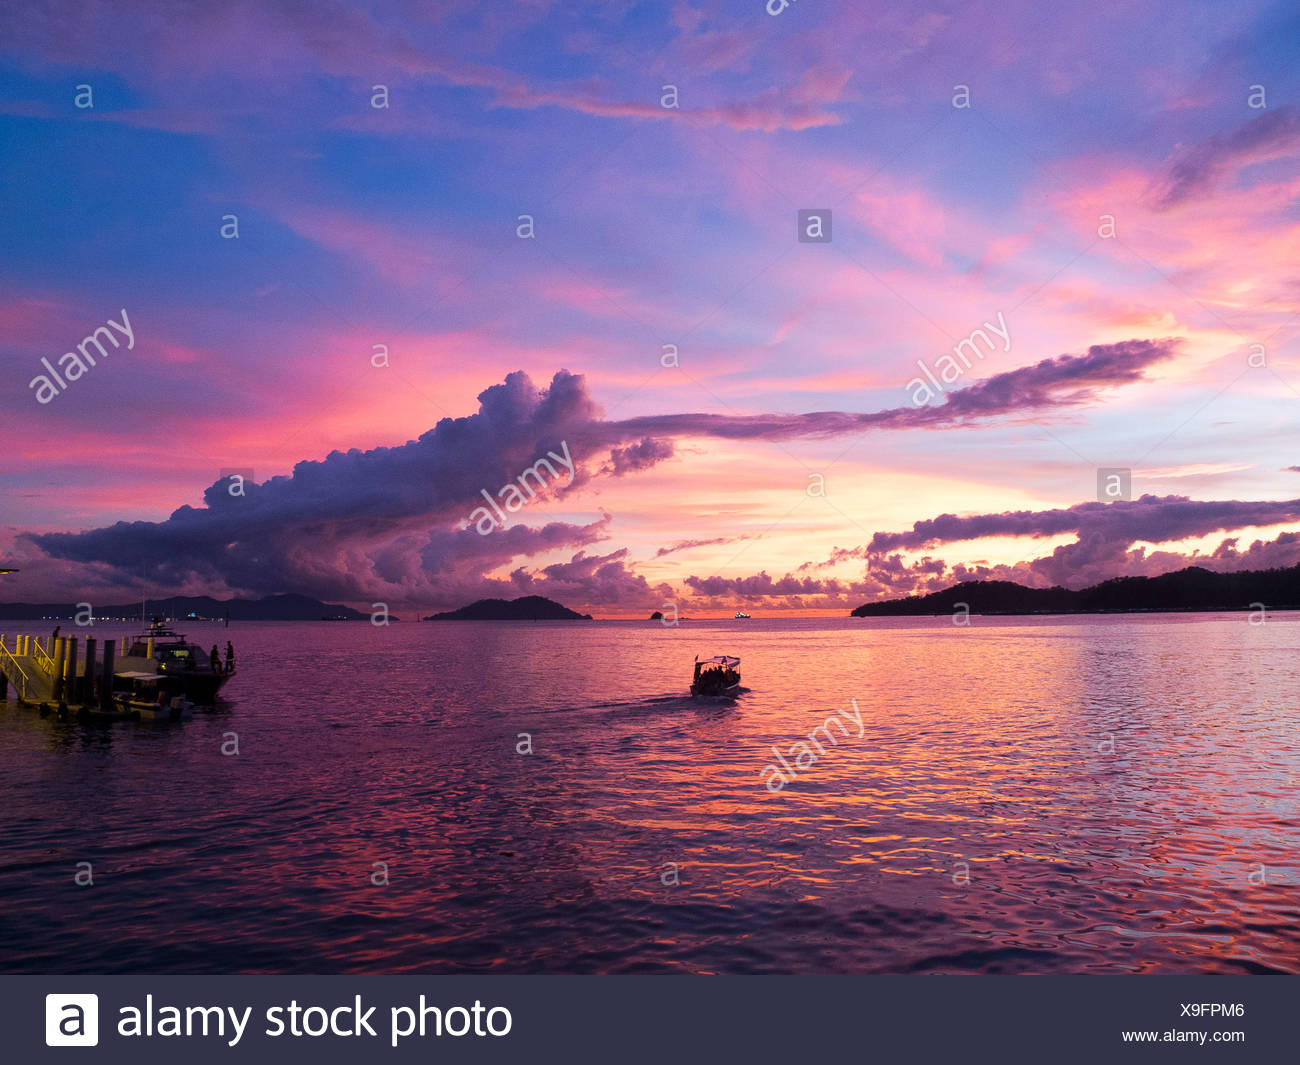 Malaysia, Borneo, South China Sea and boats - Stock Image